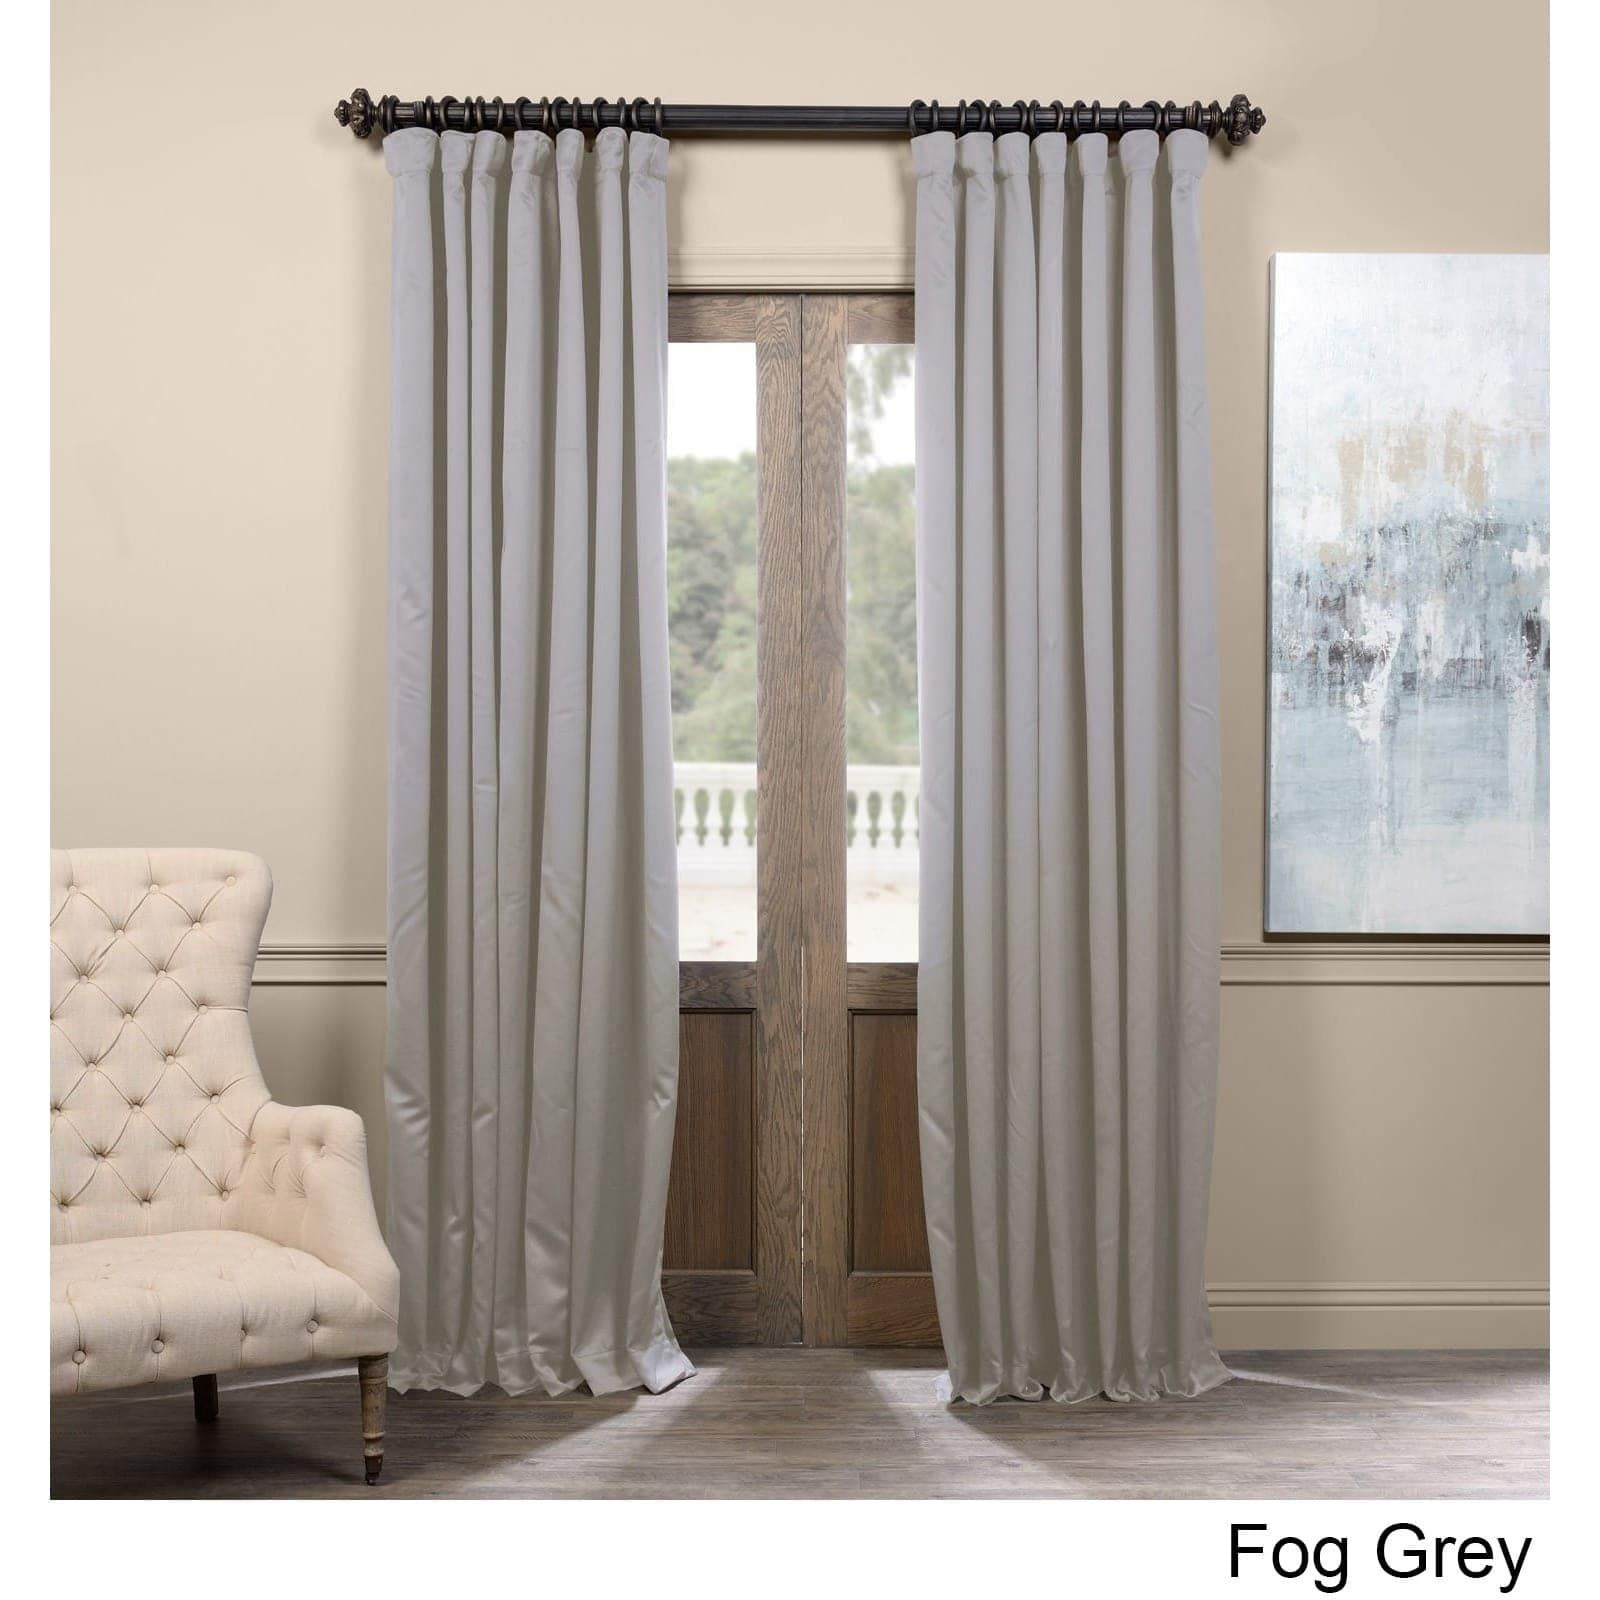 Exclusive Fabrics Extra Wide Thermal Blackout 96 Inch Curtain Panel 96 In Fog Grey As Is Item 108 Inch Curtains 96 Inch Curtains Panel Curtains